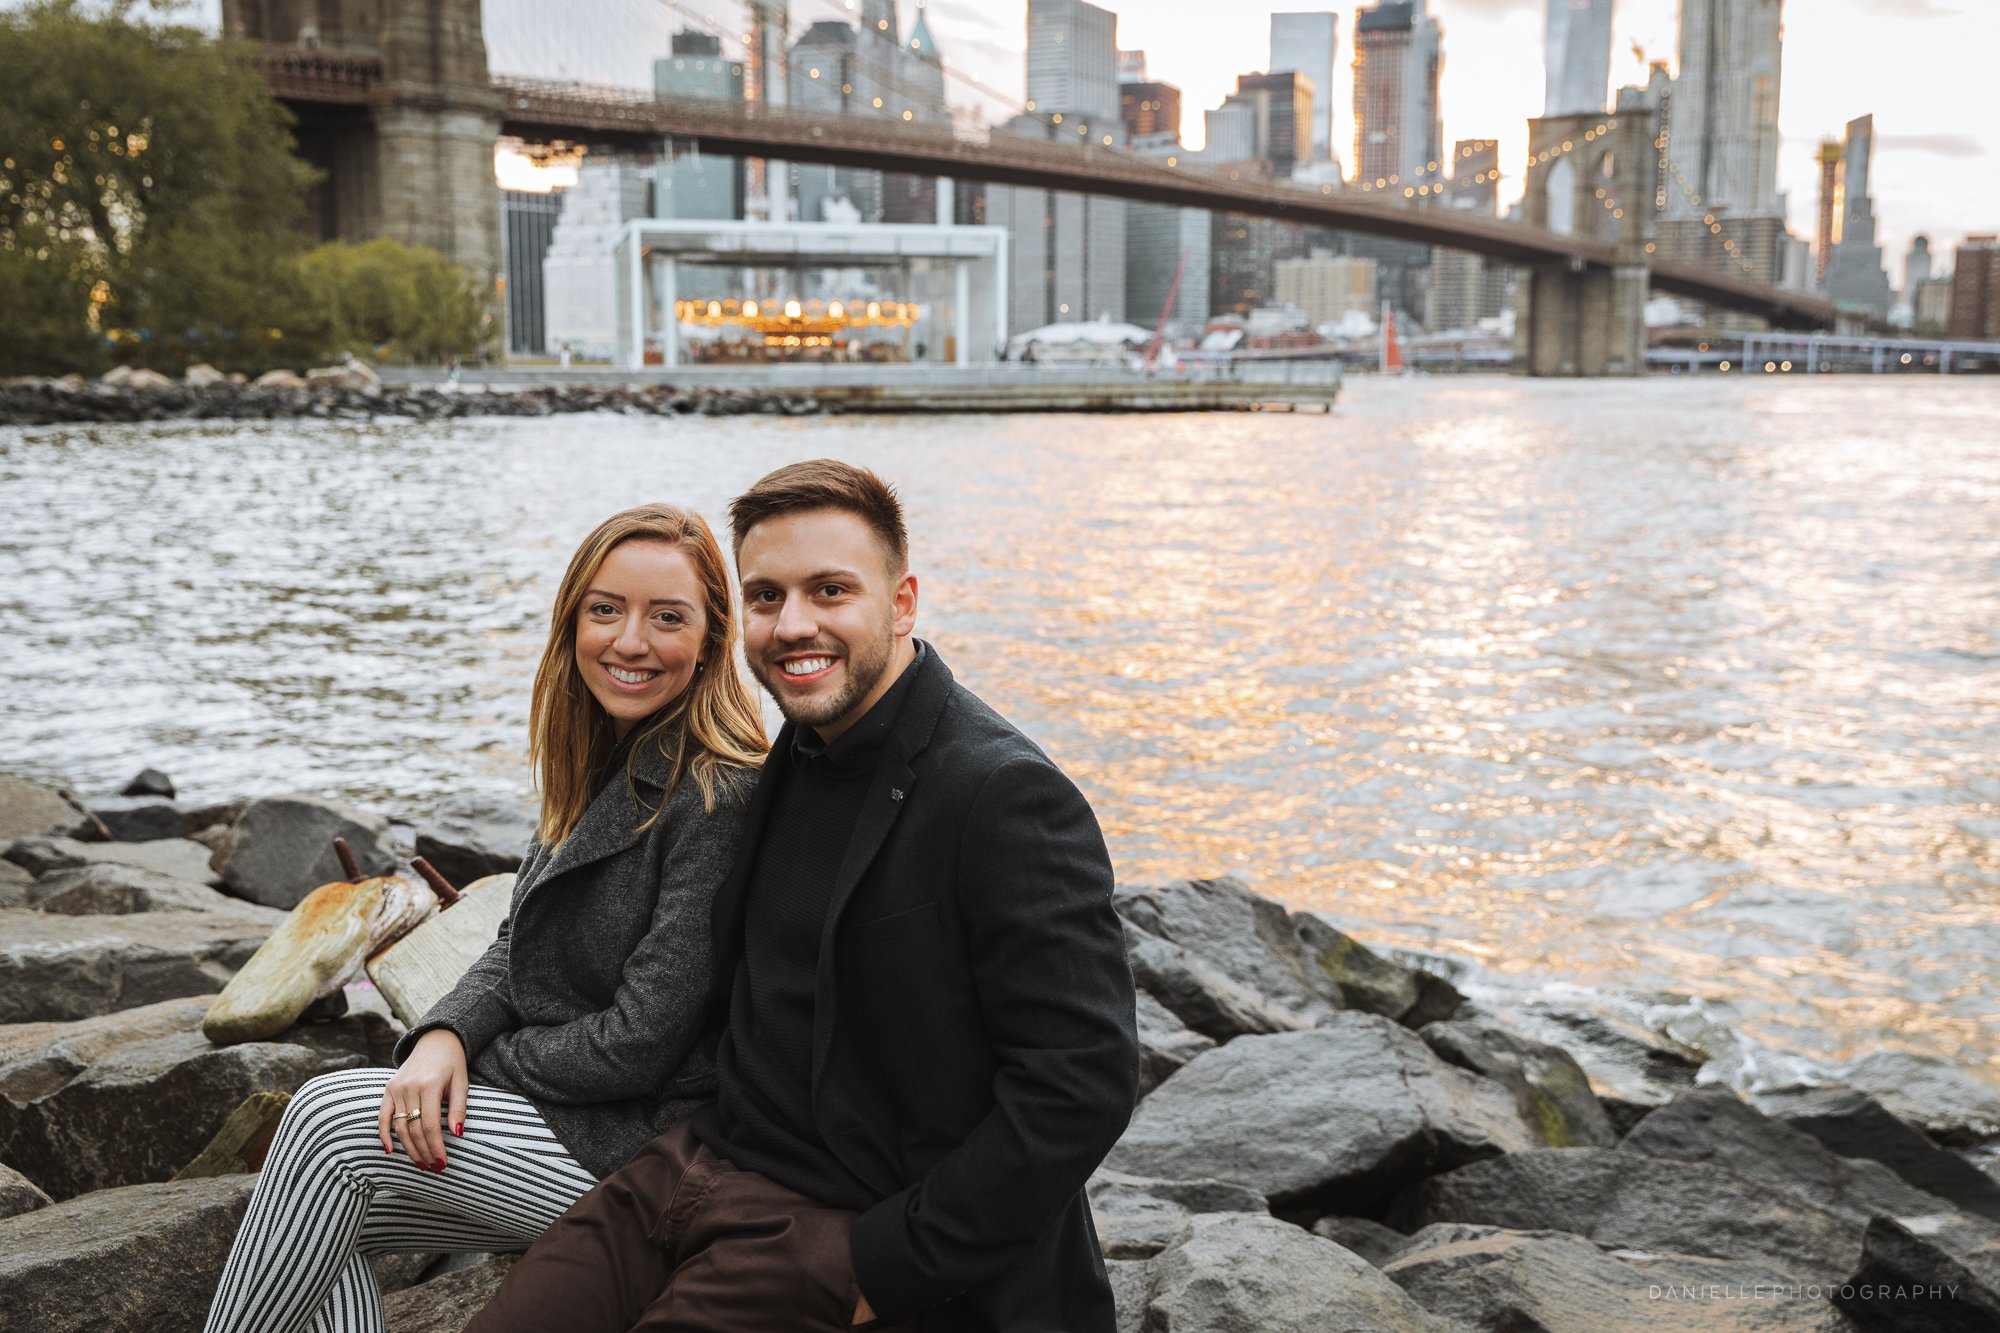 Live proposal in Dumbo, Brooklyn: She said Yes! @DaniellePhotographySa